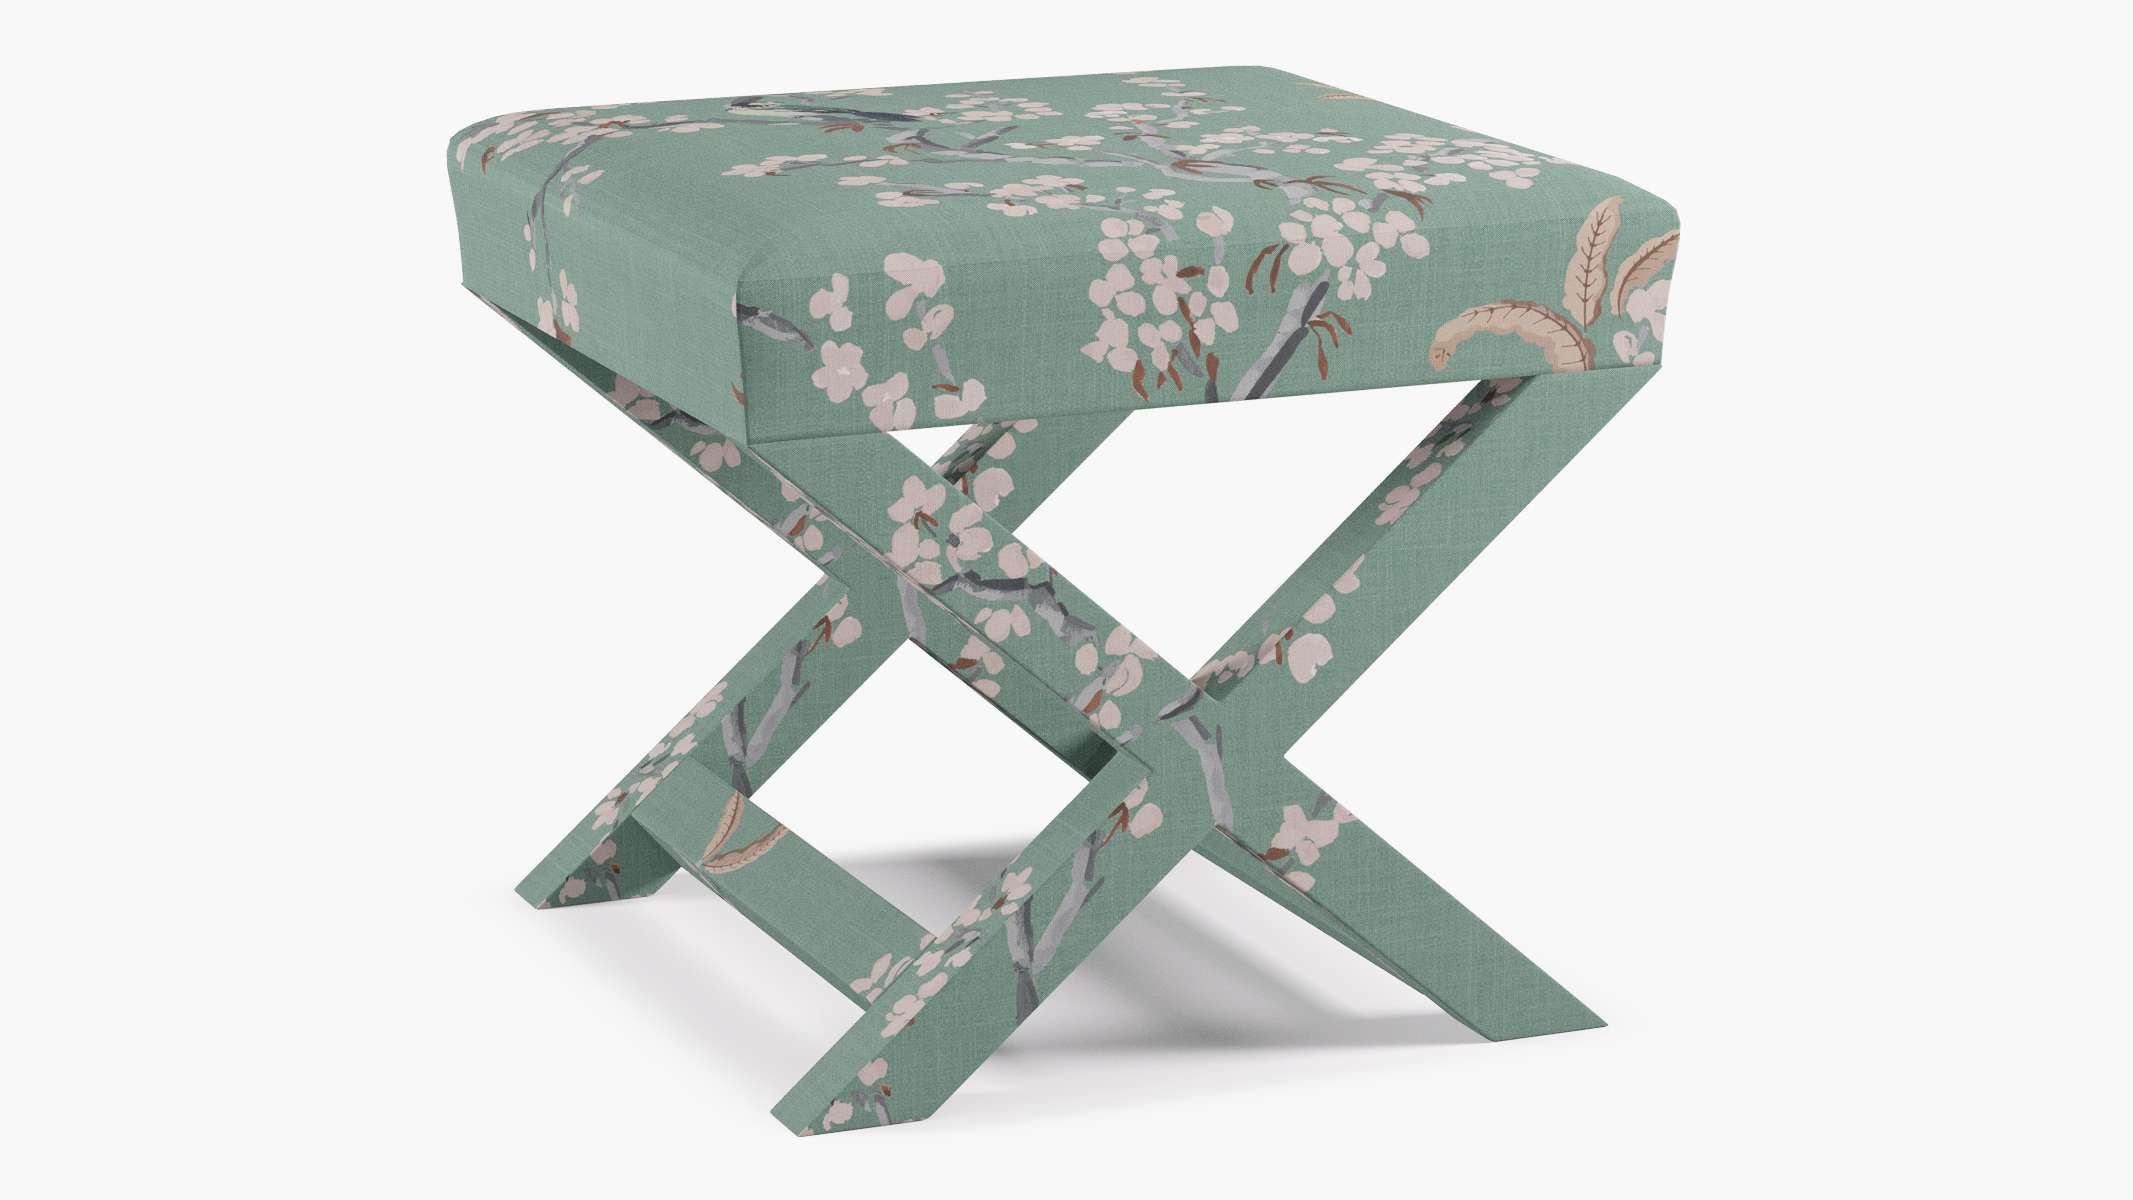 X Bench, with Mint Cherry Blossom fabric